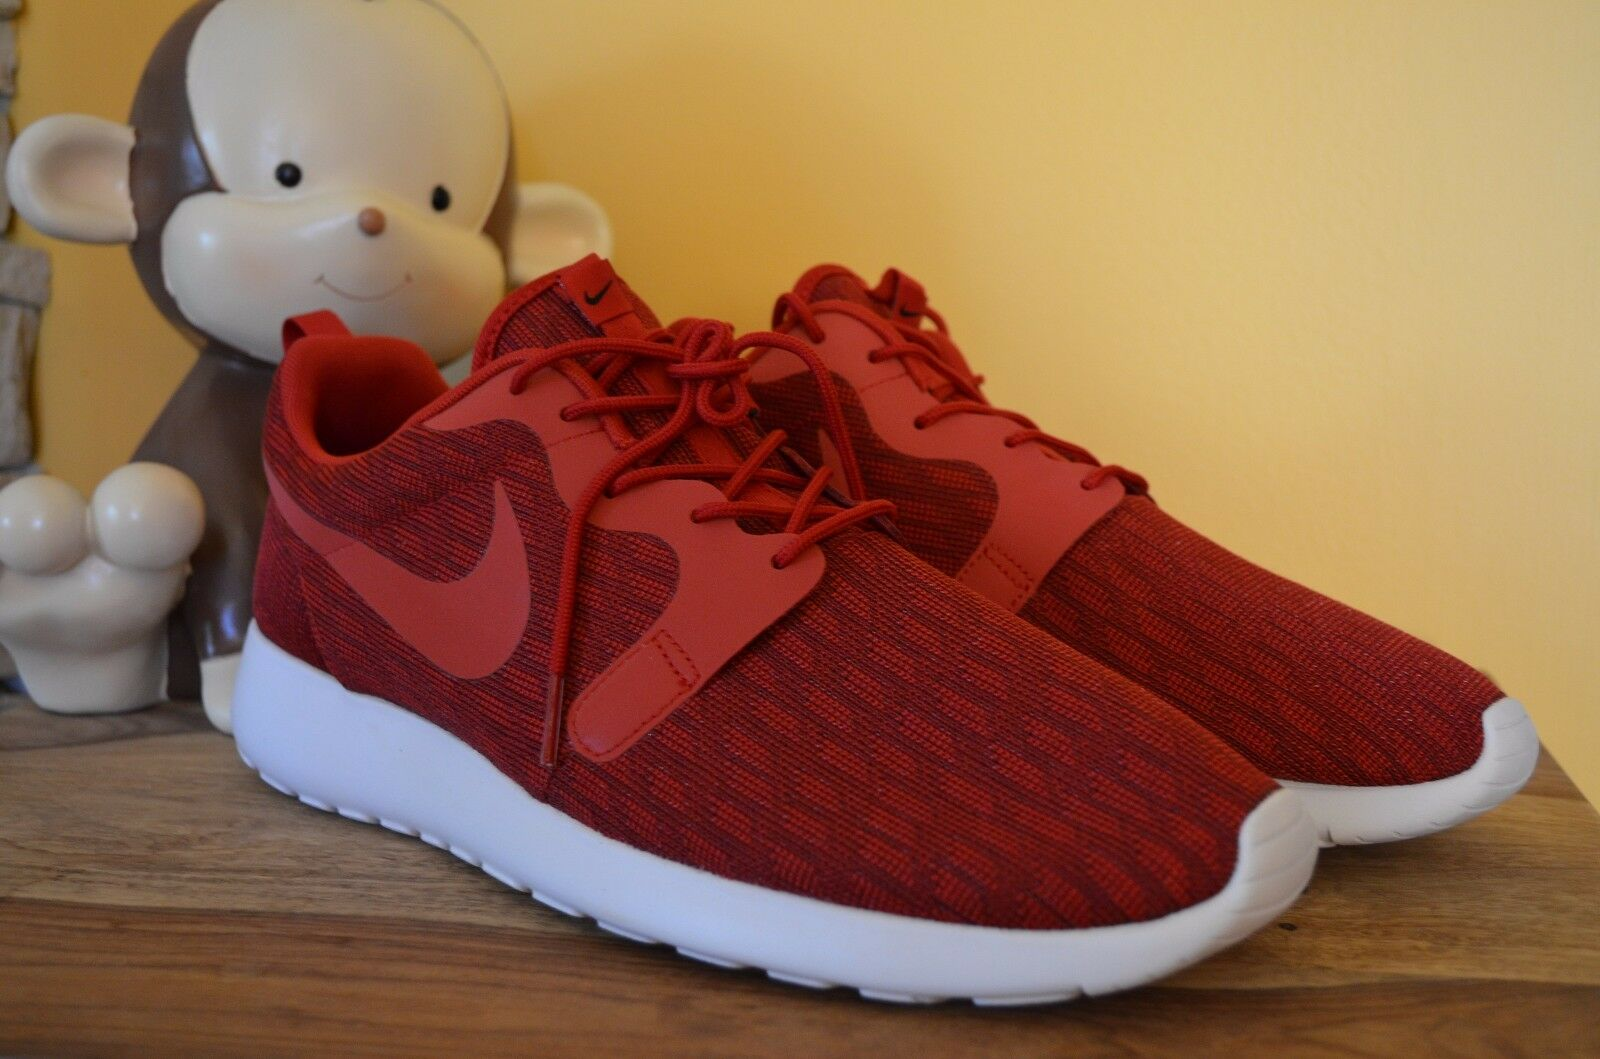 58ed5b55ae274 NEW NIKE ROSHE ONE KJCRD Running shoes MENS SZ 13 Gym Red Black 777429-